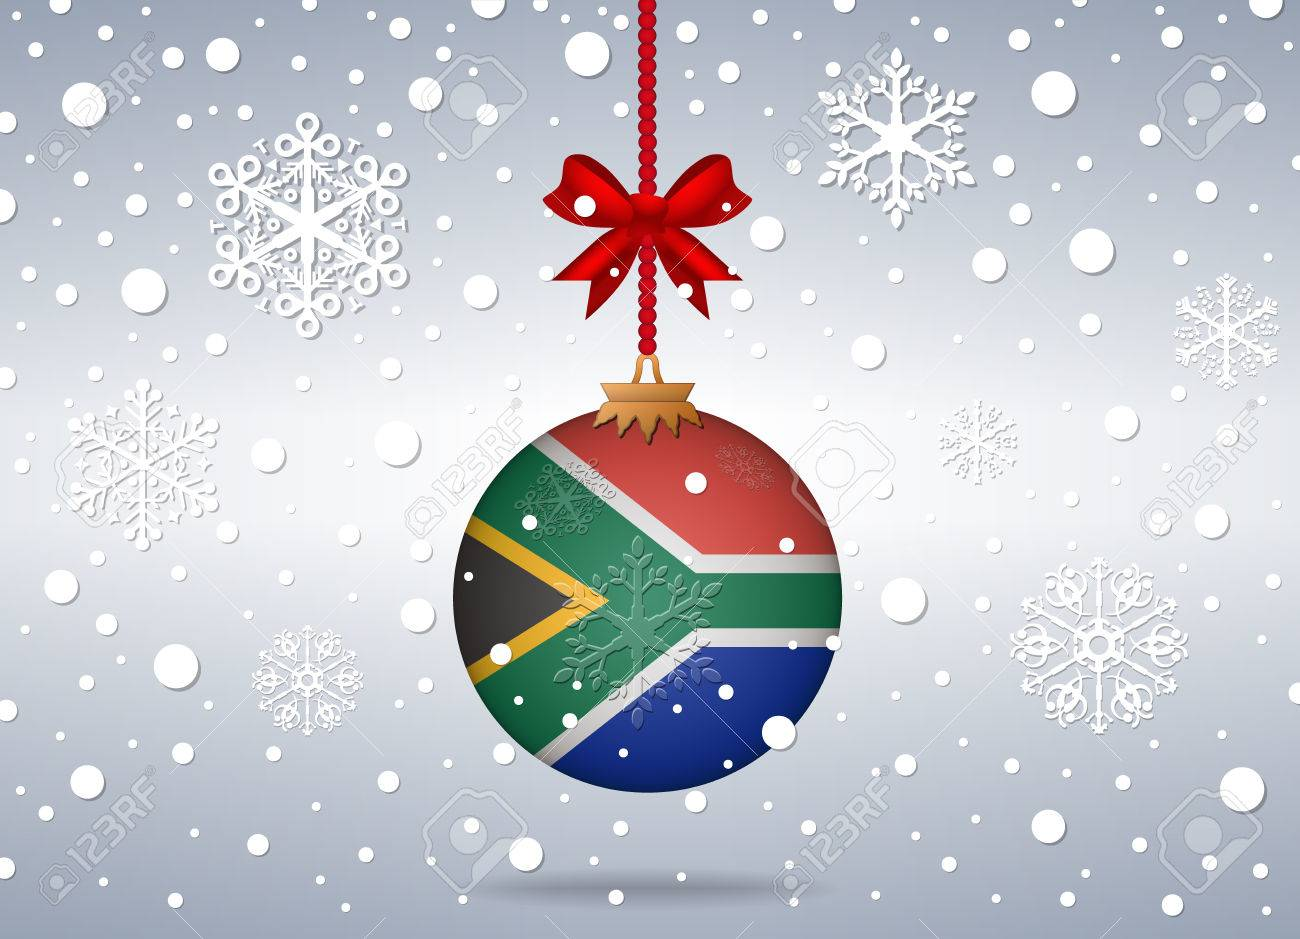 Christmas In South Africa Images.Christmas Background South Africa